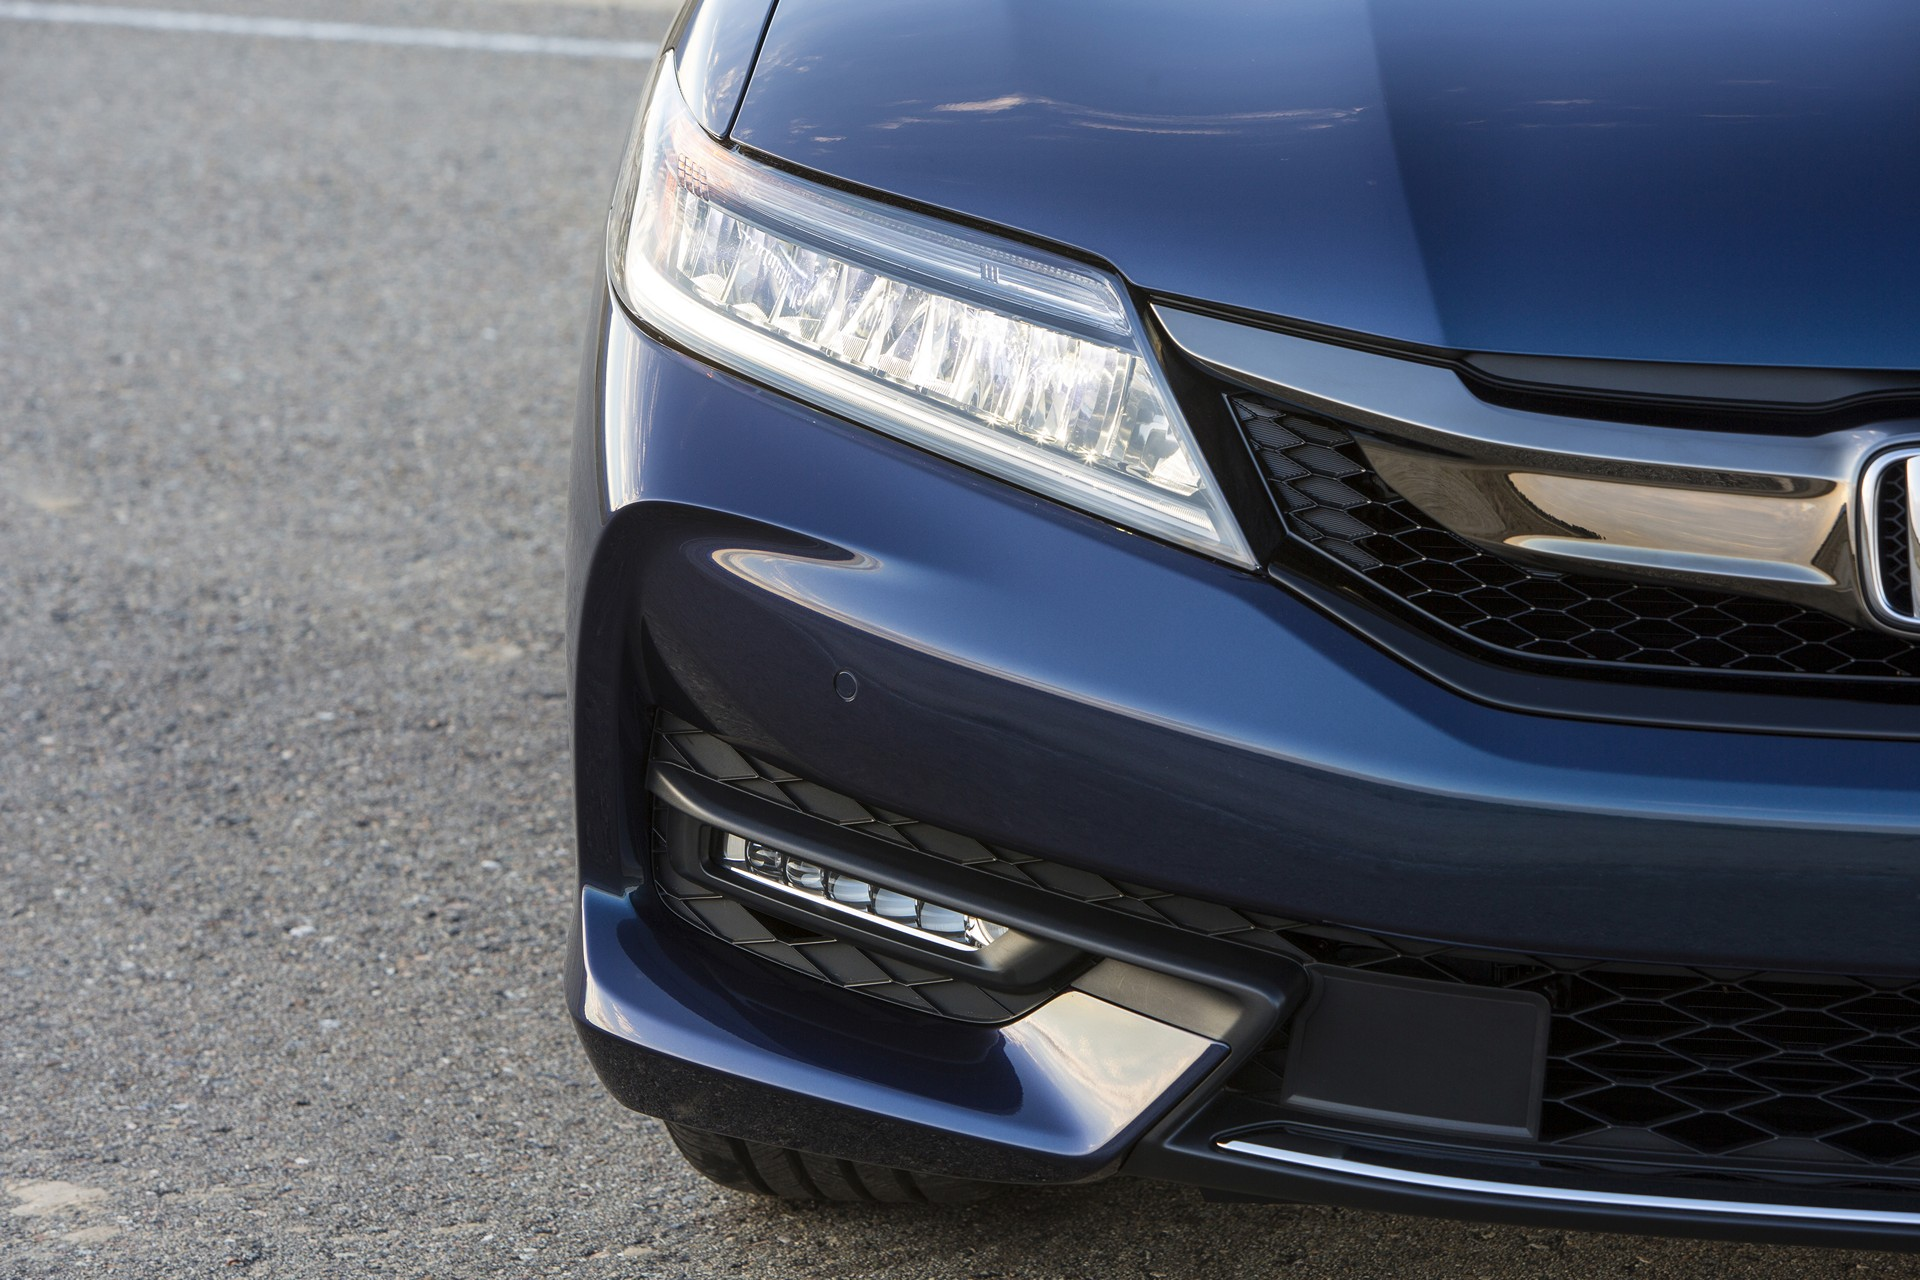 2016 Honda Accord Coupe © Honda Motor Co., Ltd.